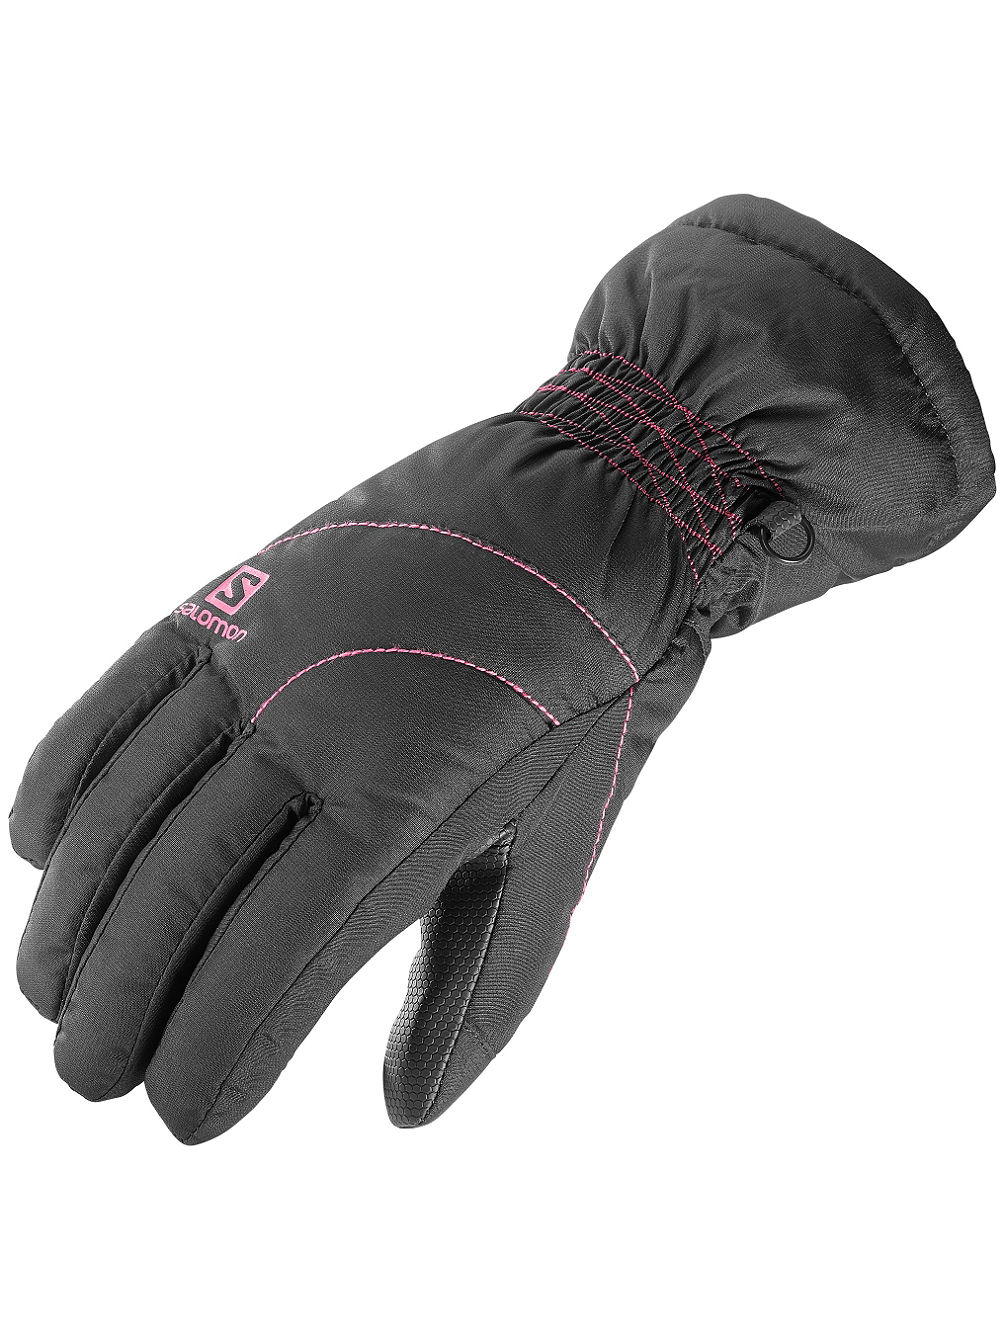 salomon-cruise-gloves